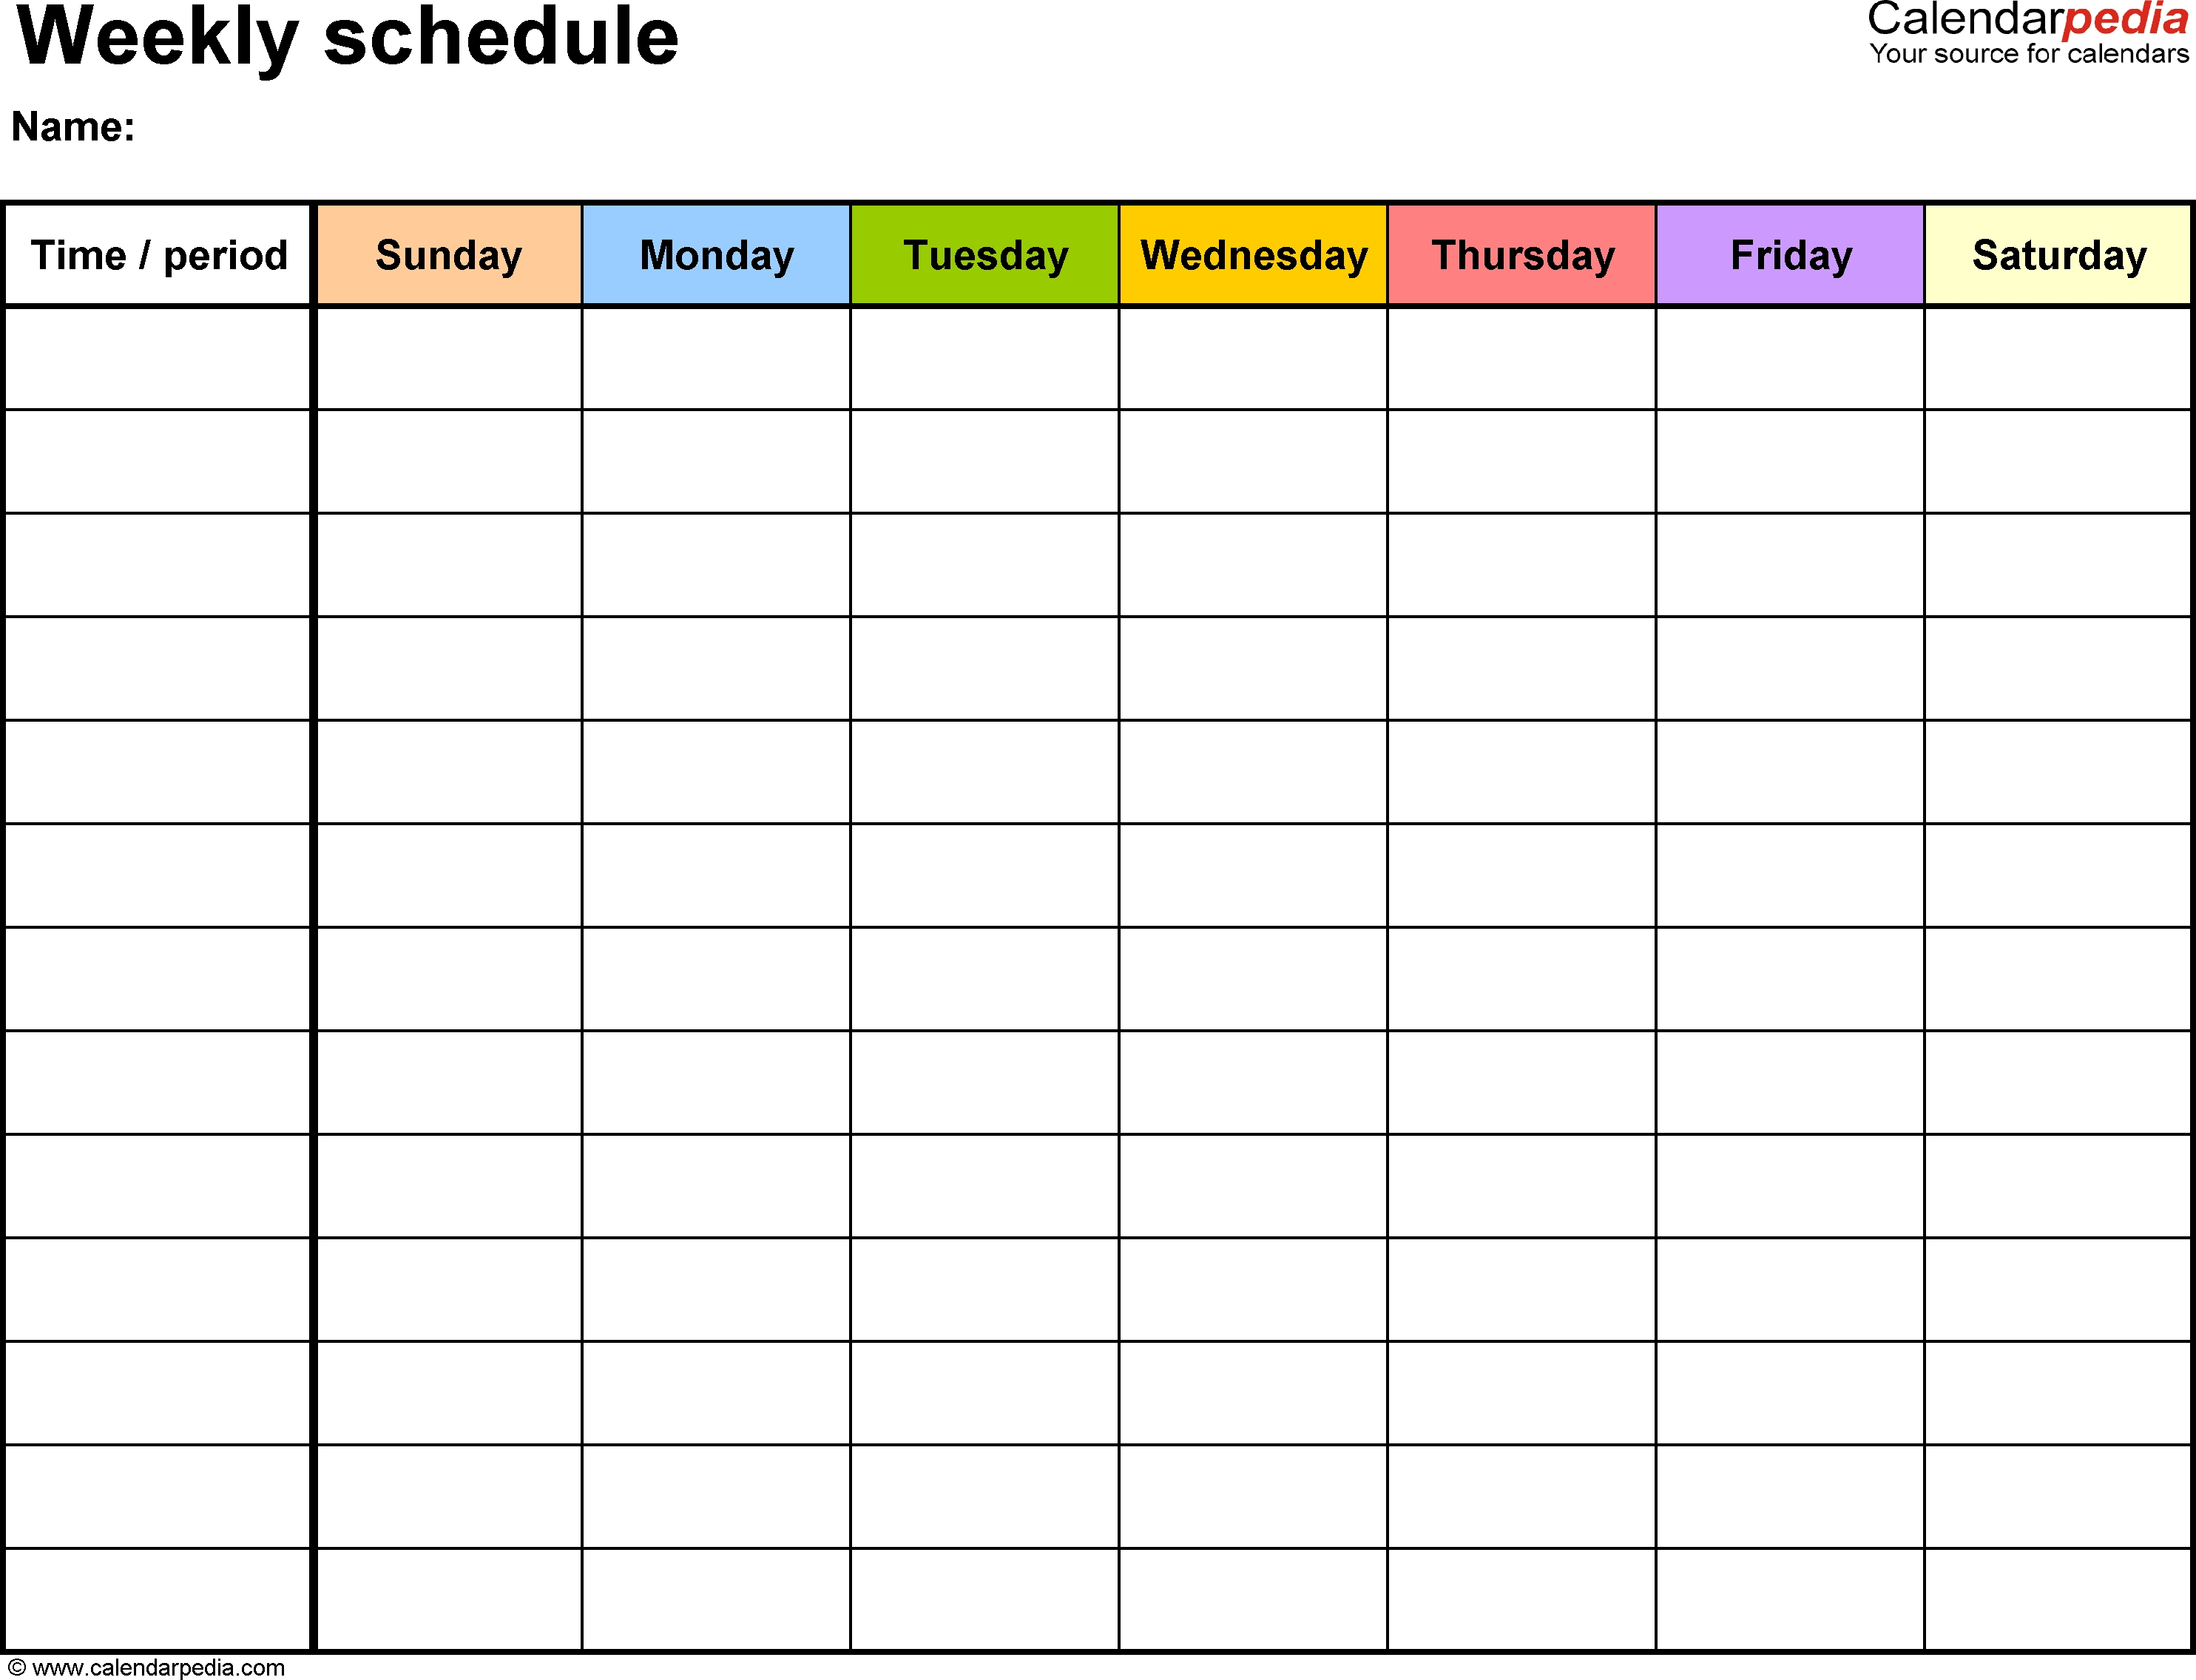 Free Weekly Schedule Templates For Word - 18 Templates Calendar Template Saturday Start